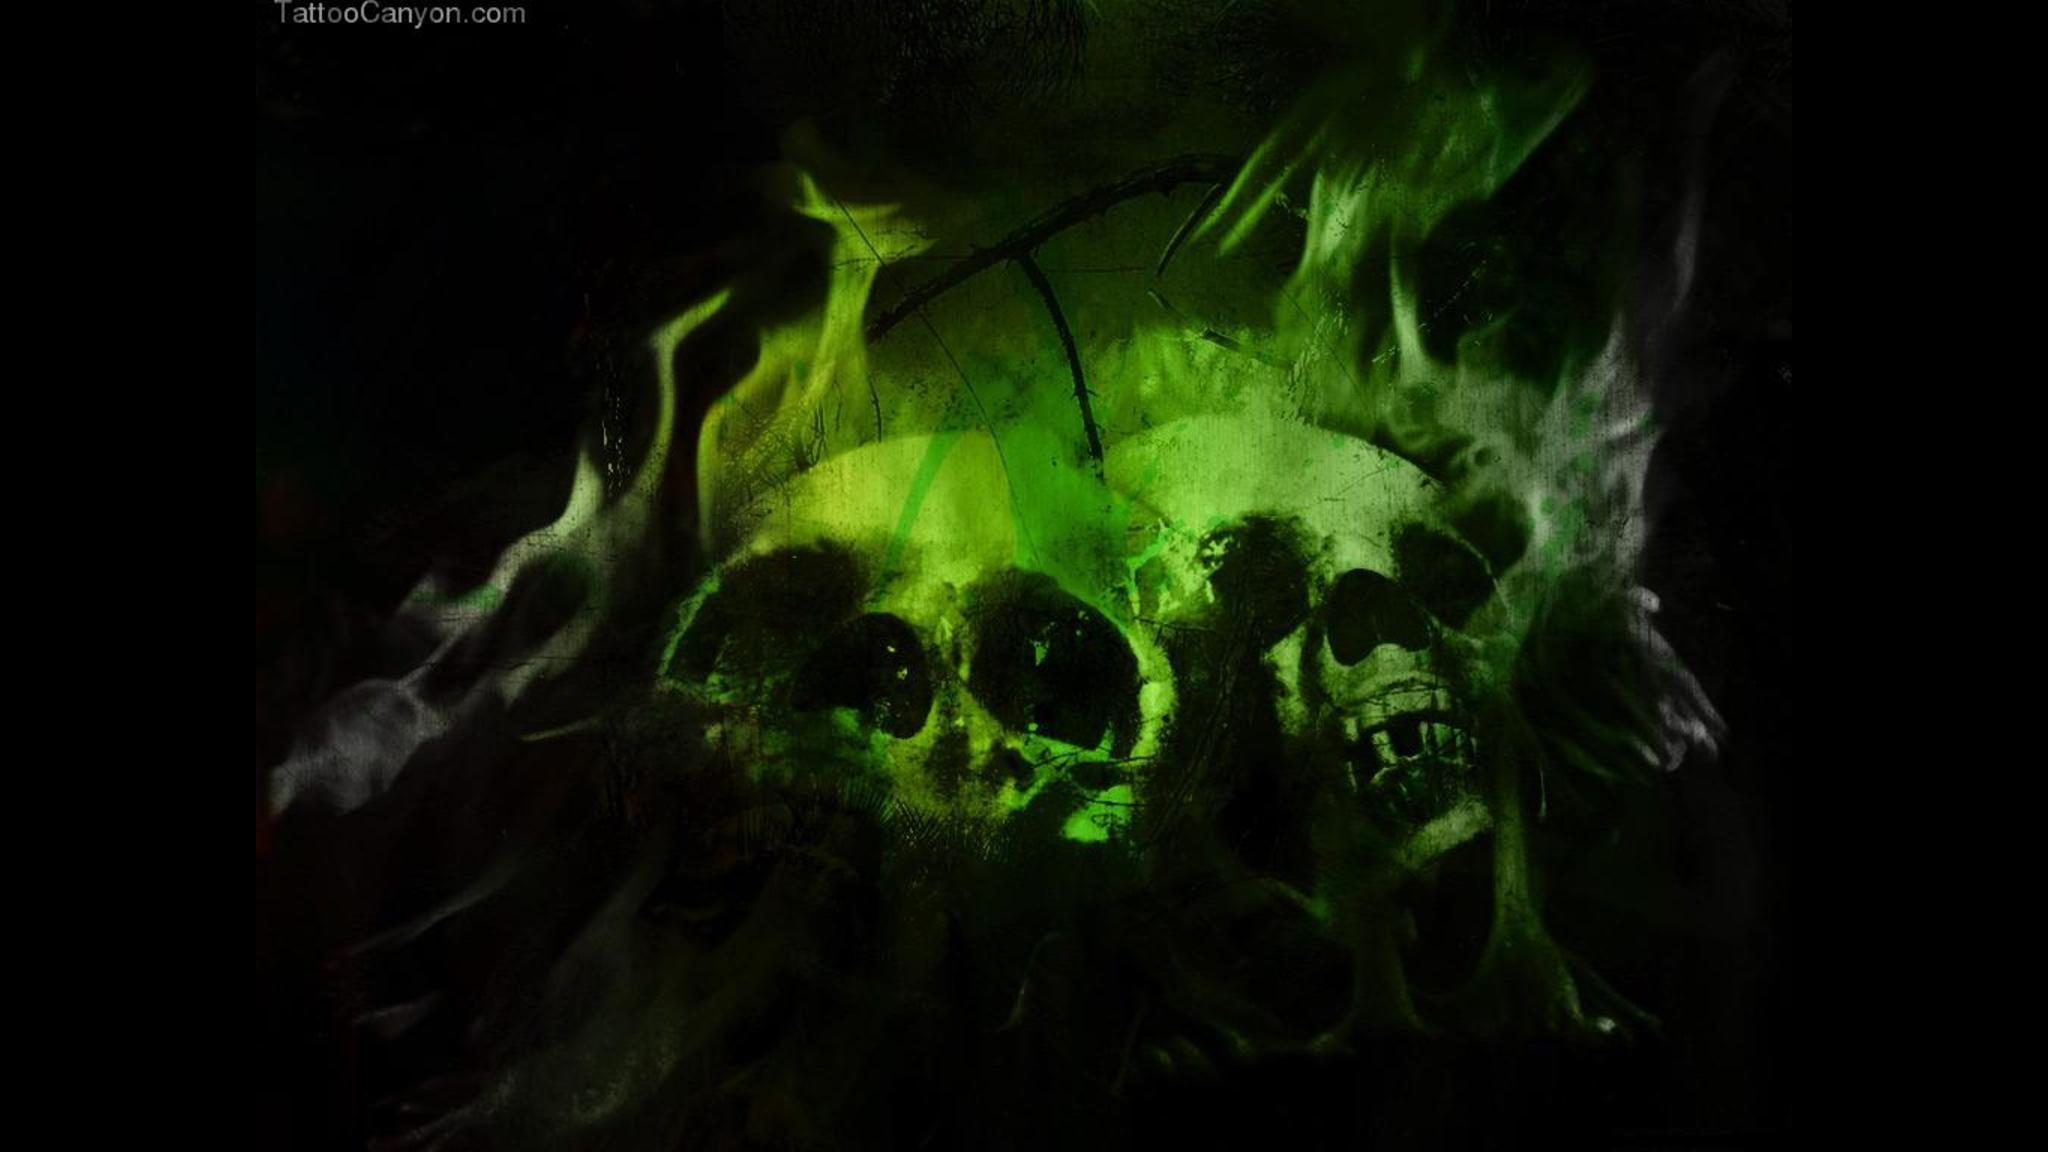 Download Flaming Skull Wallpaper Pictures 1032 X 774 231 Kb Jpeg 2048x1152